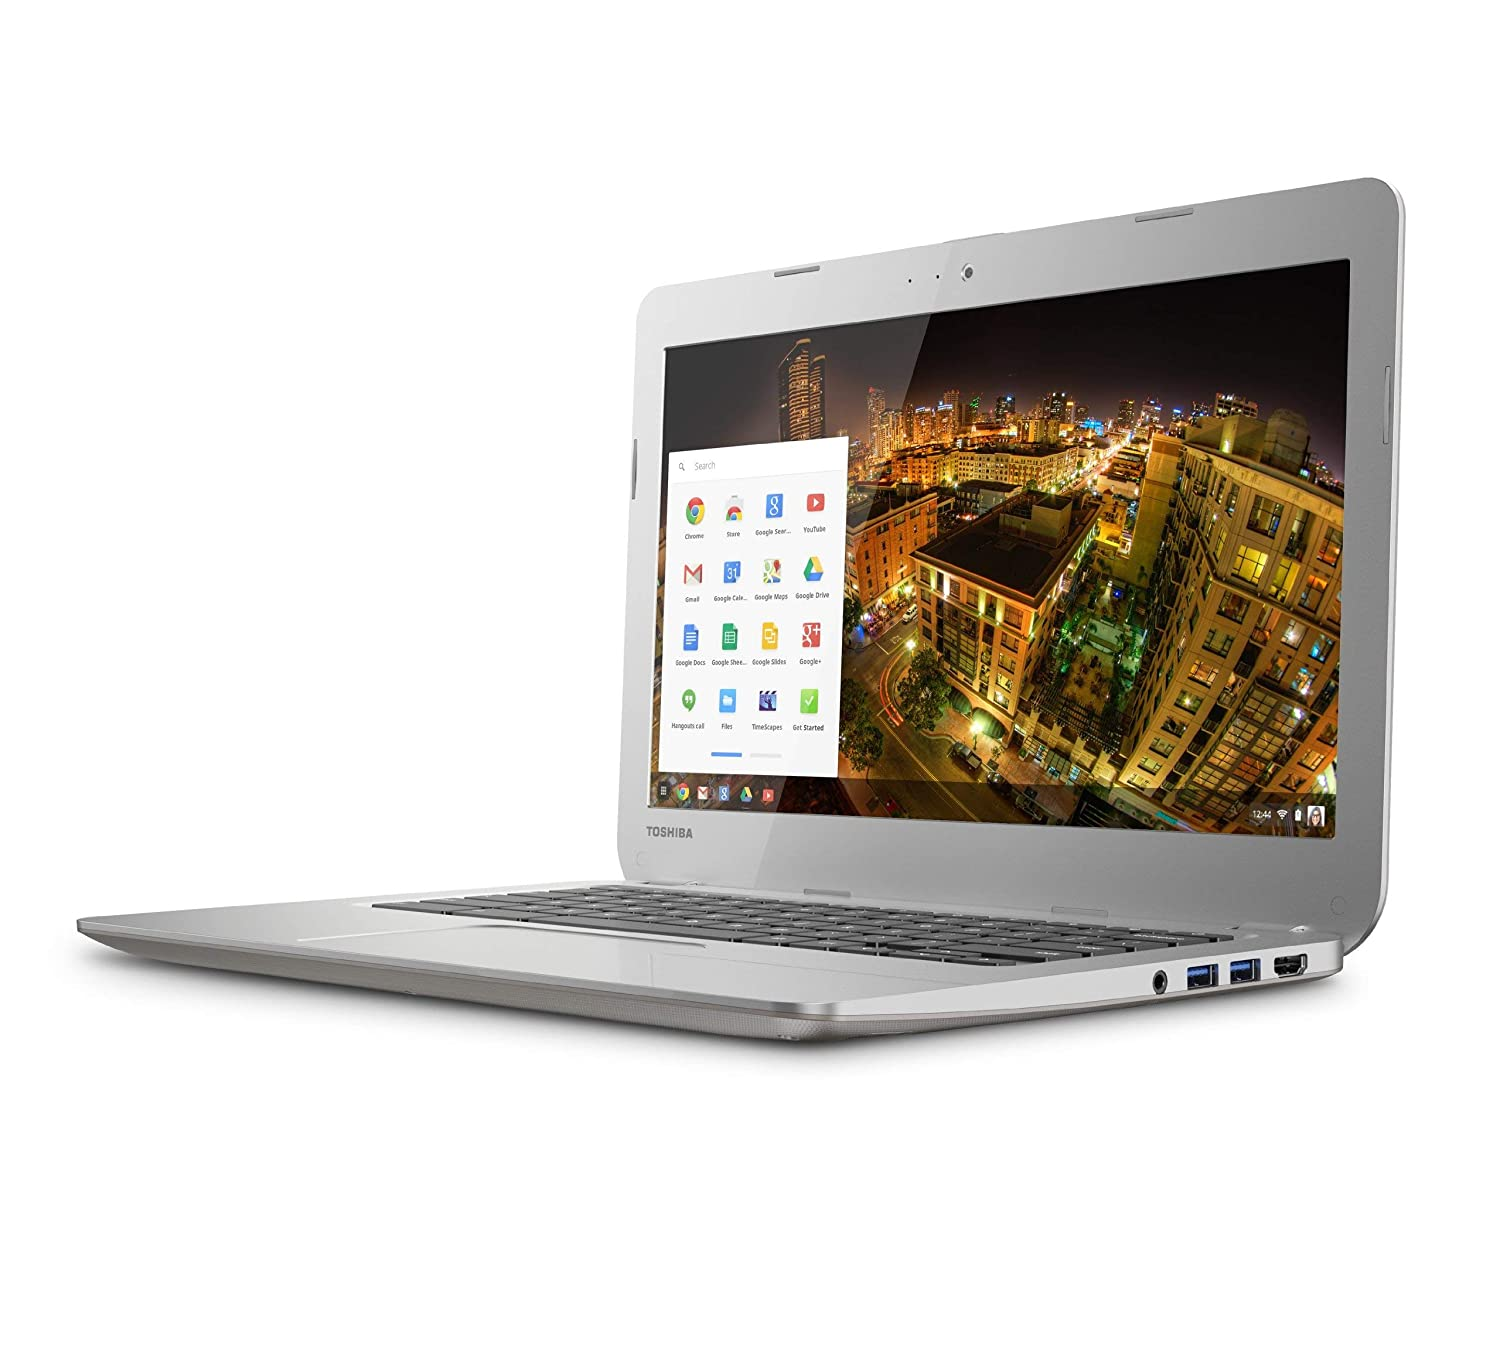 google chromebook tech support phone number, how to connect my chromebook to my printer, what's the best chromebook to buy,